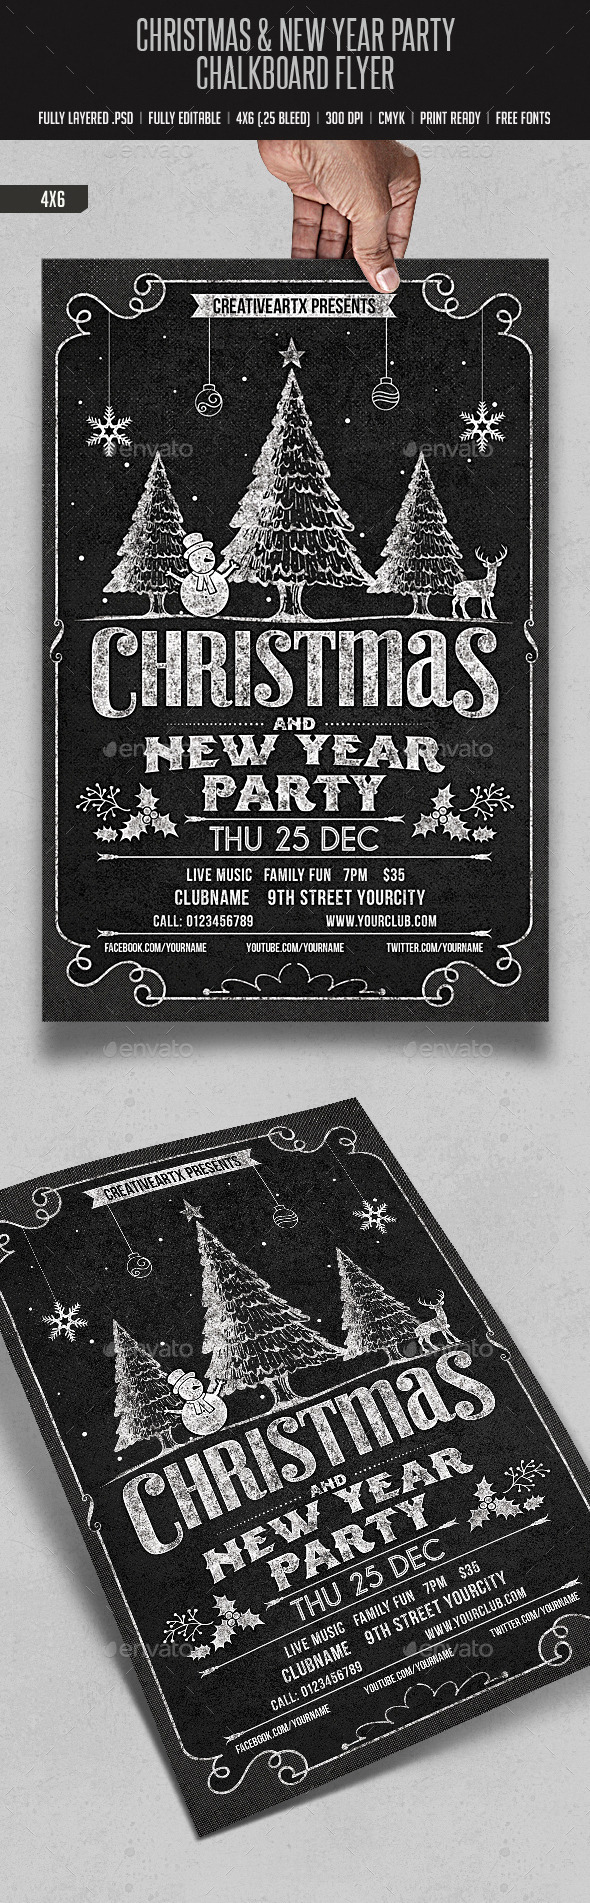 Christmas & New Year Party Chalk Board Flyer - Events Flyers